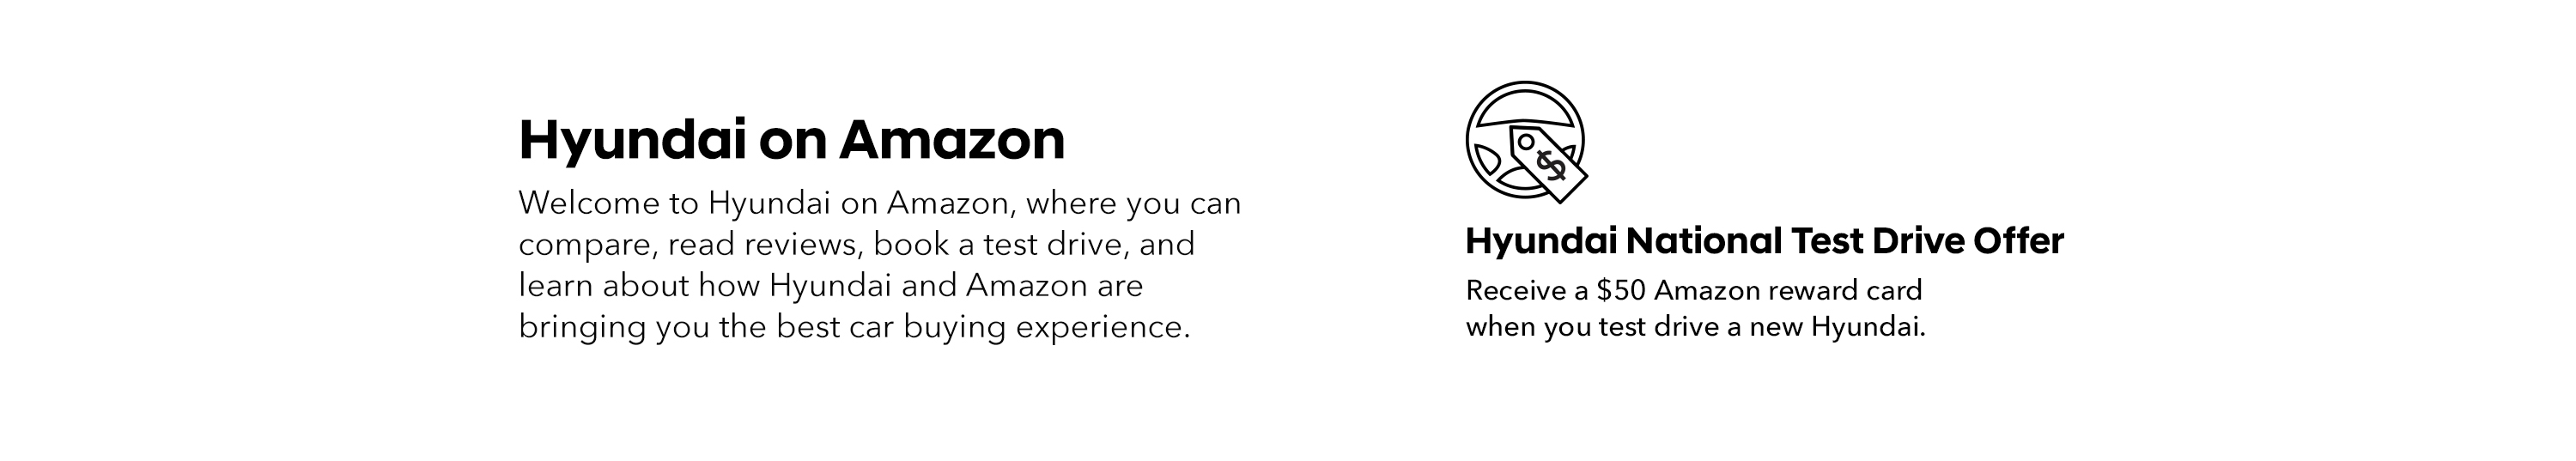 Hyundai on Amazon